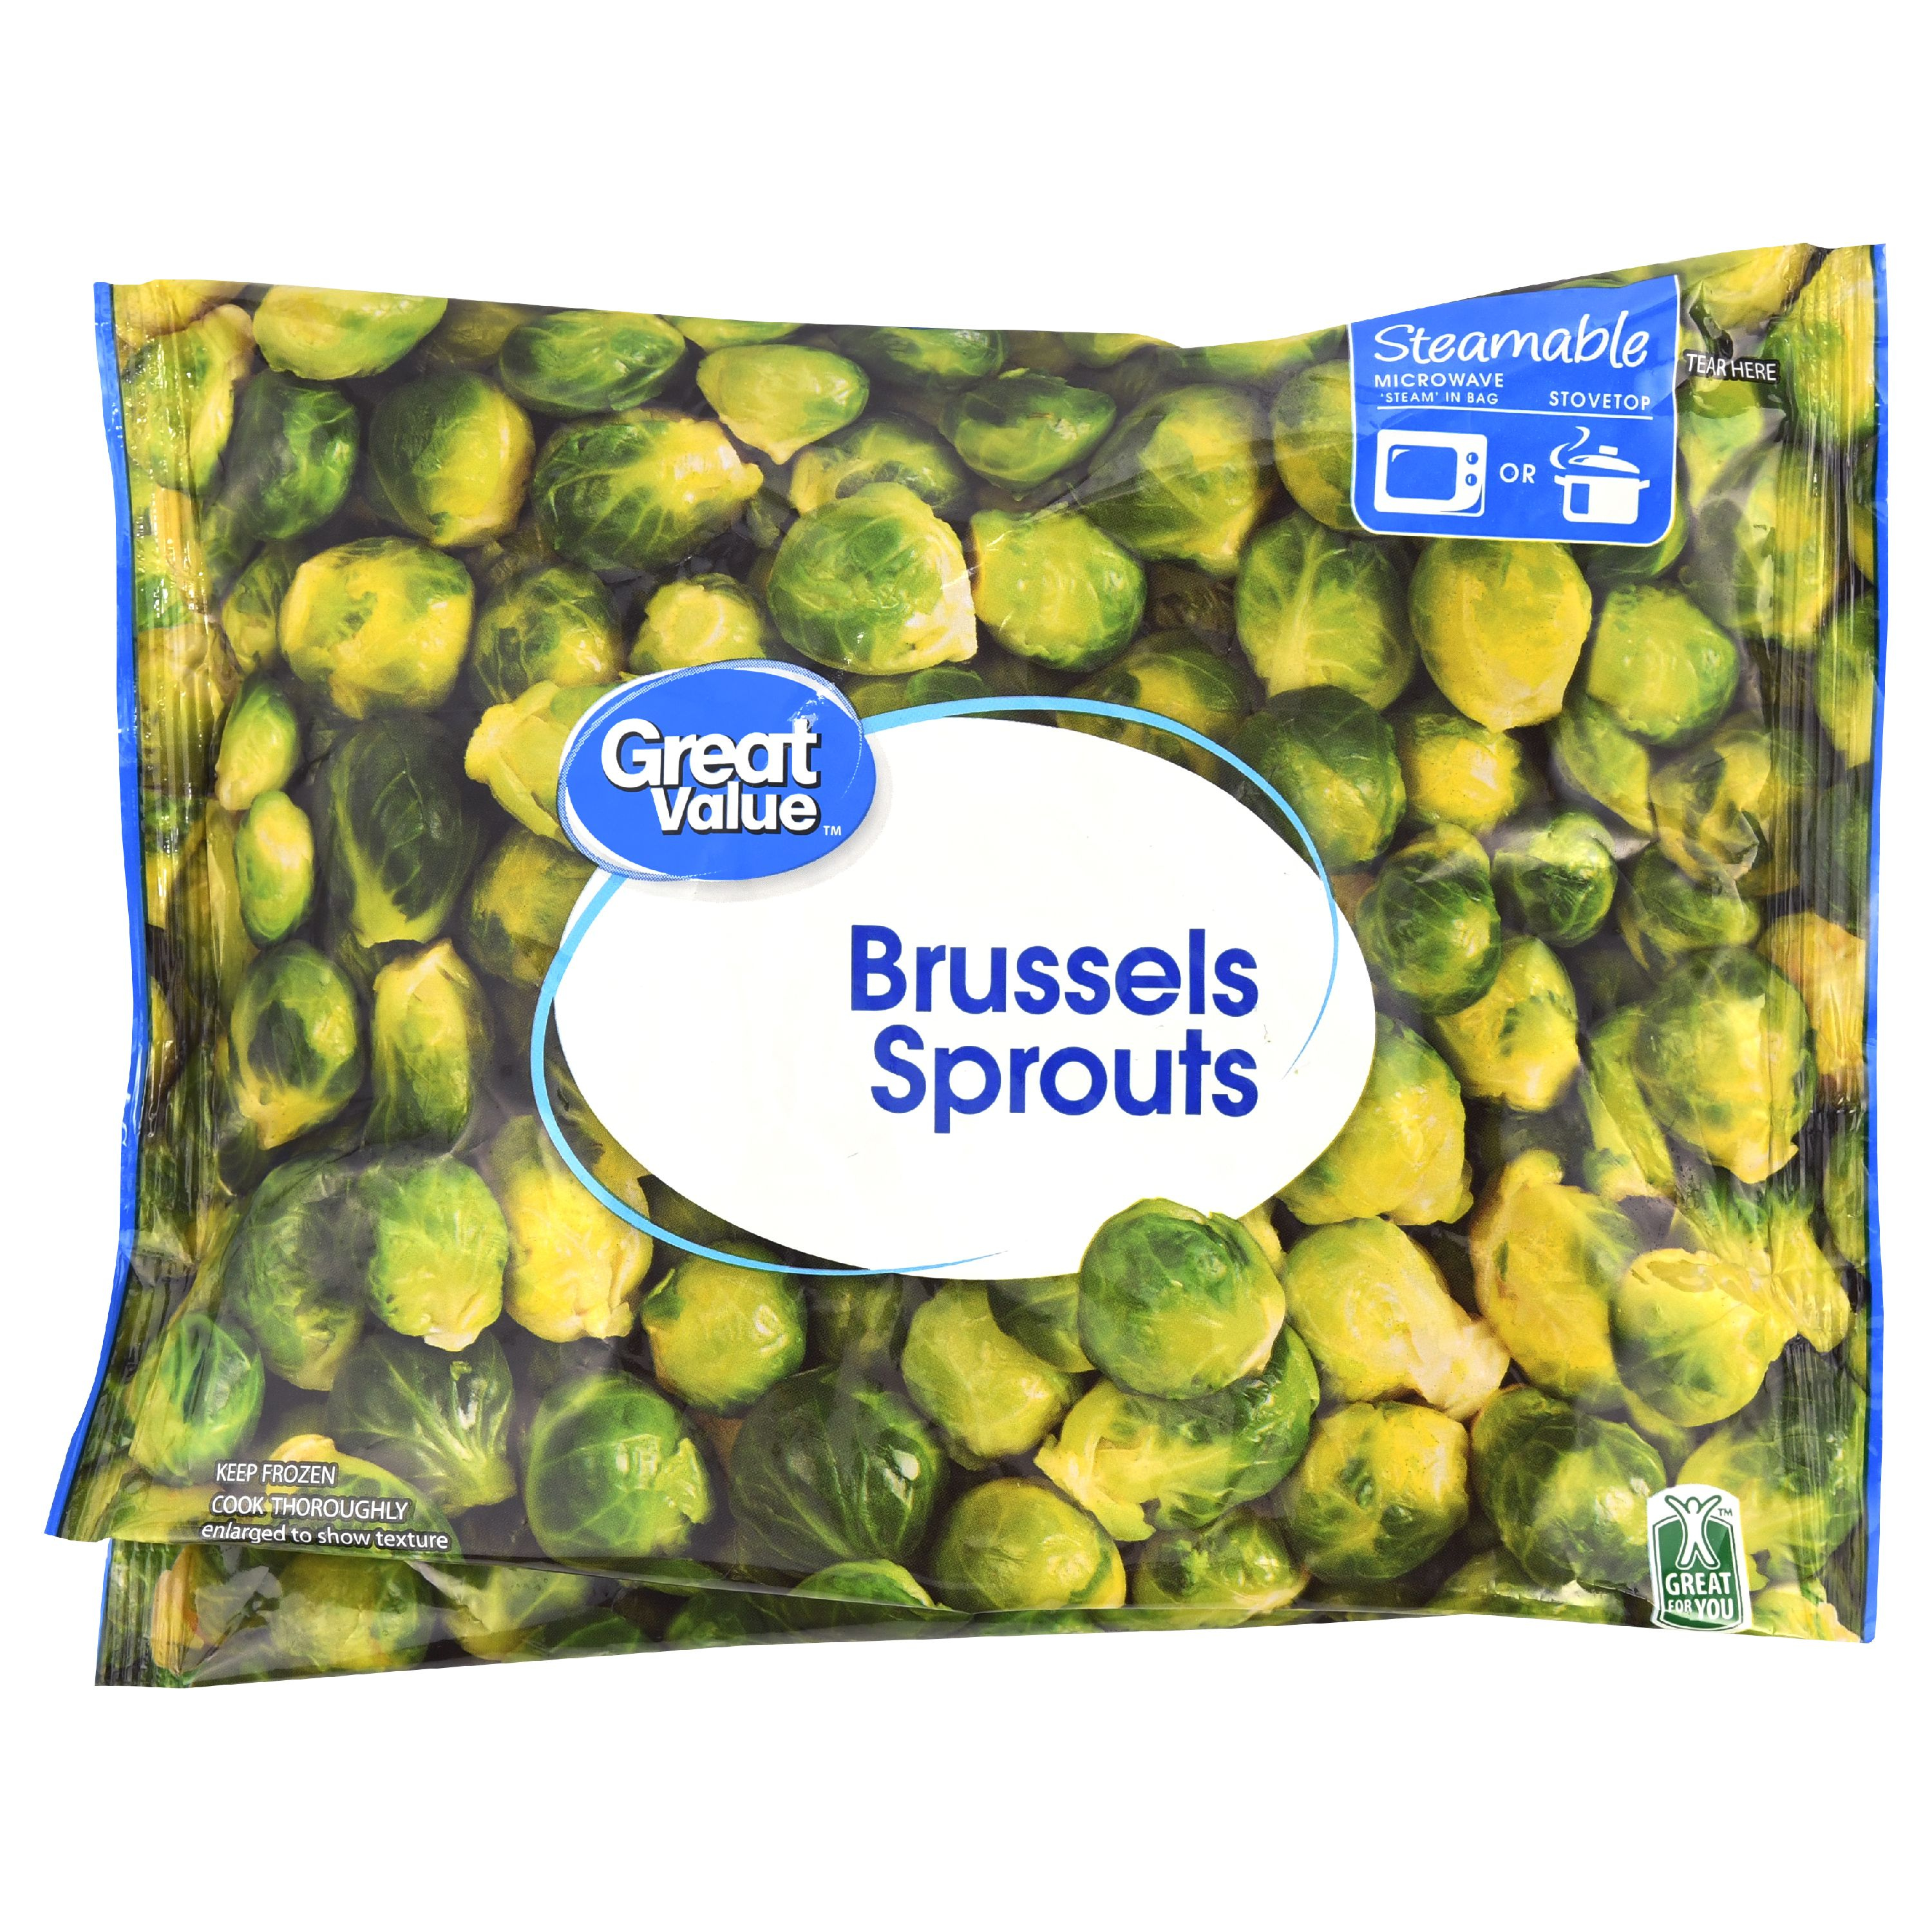 How long to cook frozen brussel sprouts in microwave